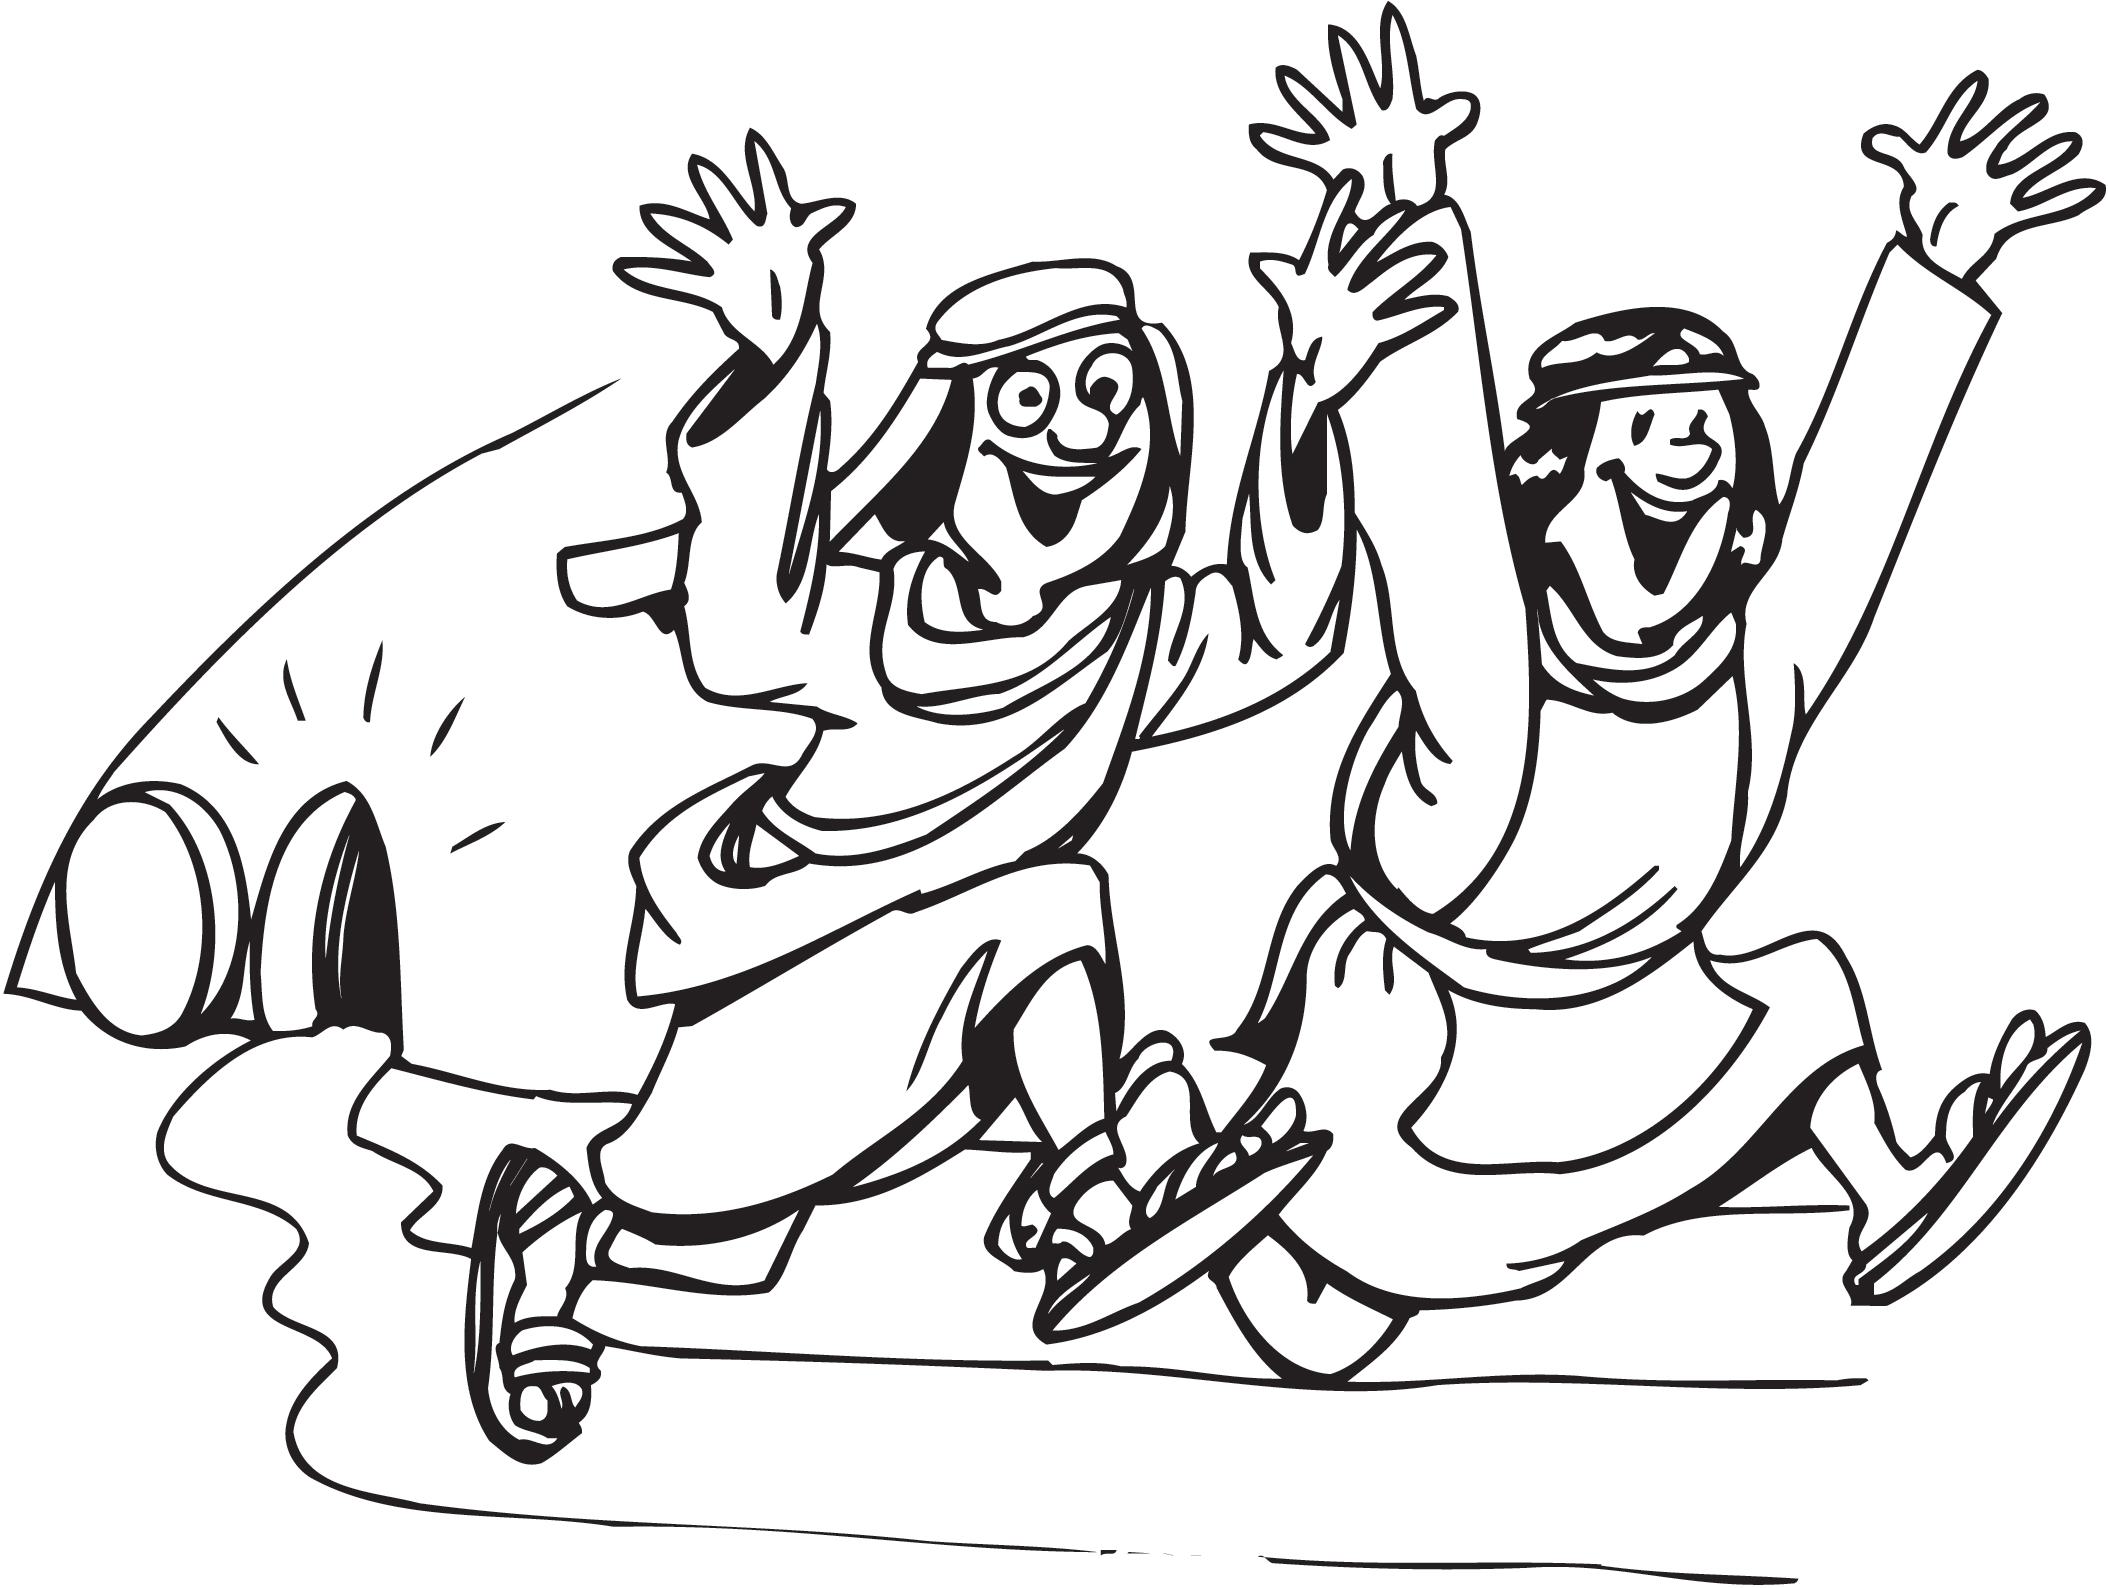 Jesus Line Drawing at GetDrawings.com | Free for personal use Jesus ...